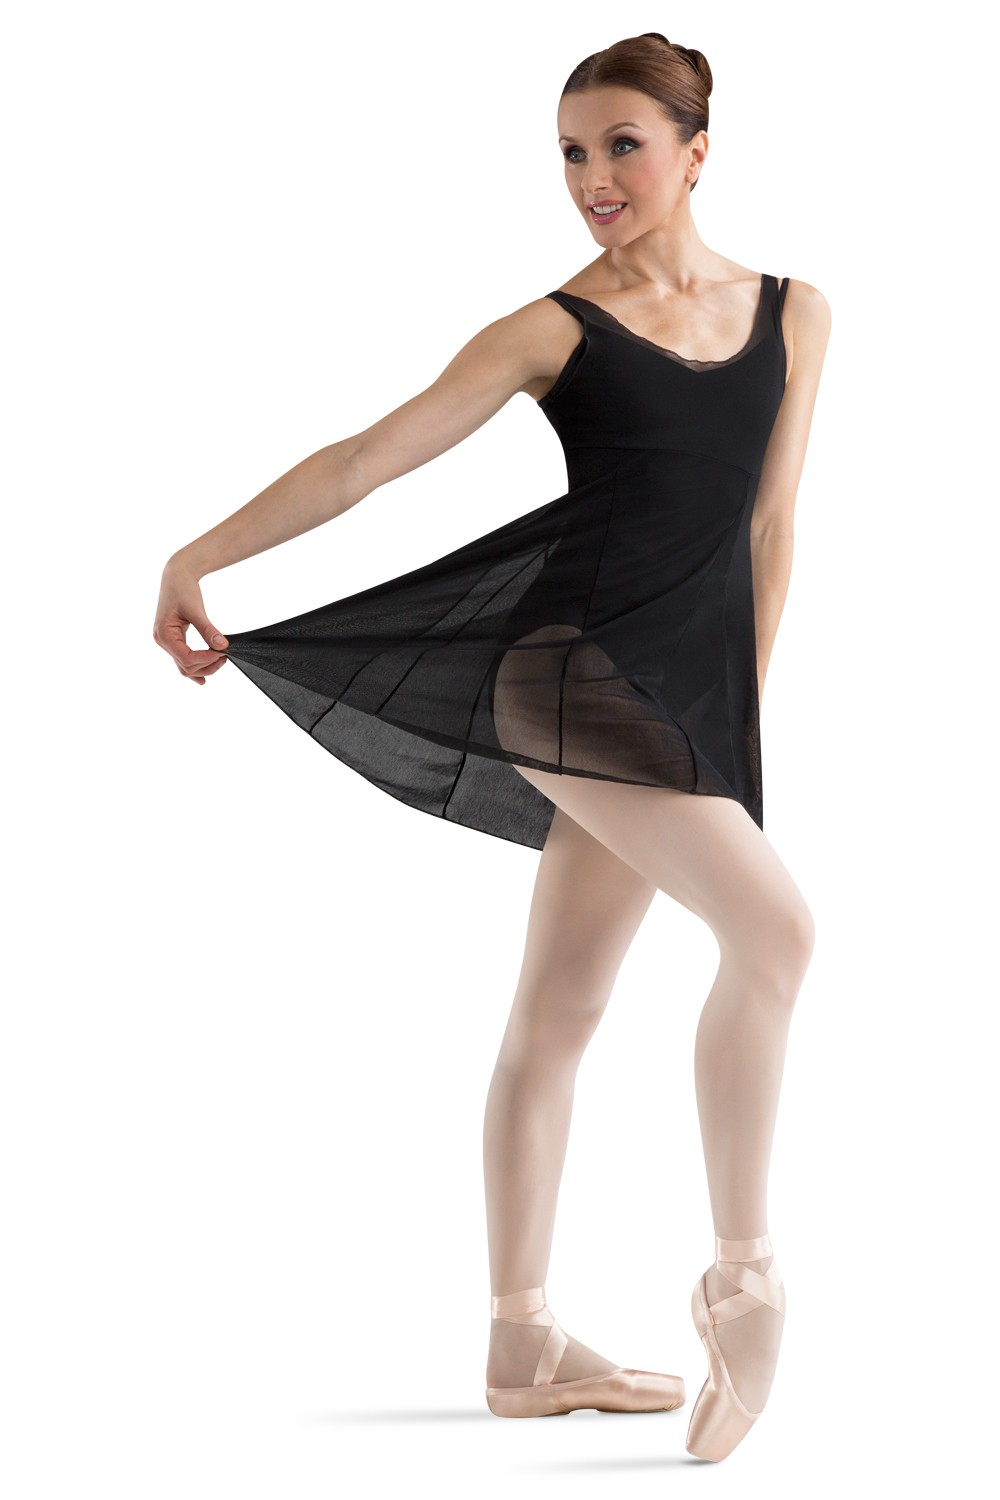 Emerge Nylon Mesh Dance Dress Women's Dance Skirts